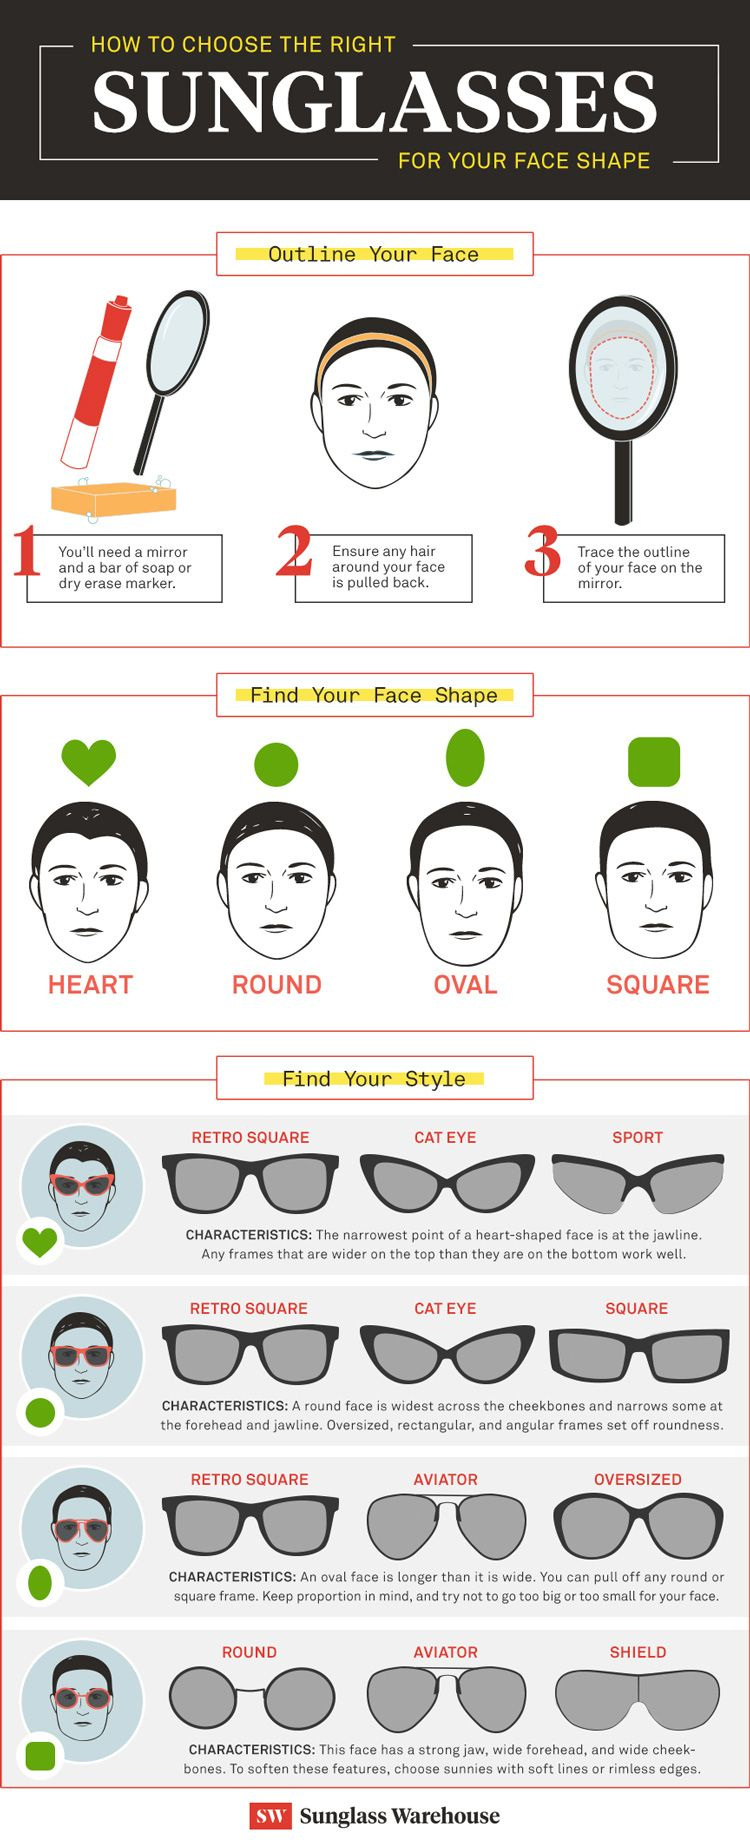 f8c995c7dd Want to know the best sunglasses style for your face shape  Follow our  three easy steps to finding the sunglasses that fit your face!